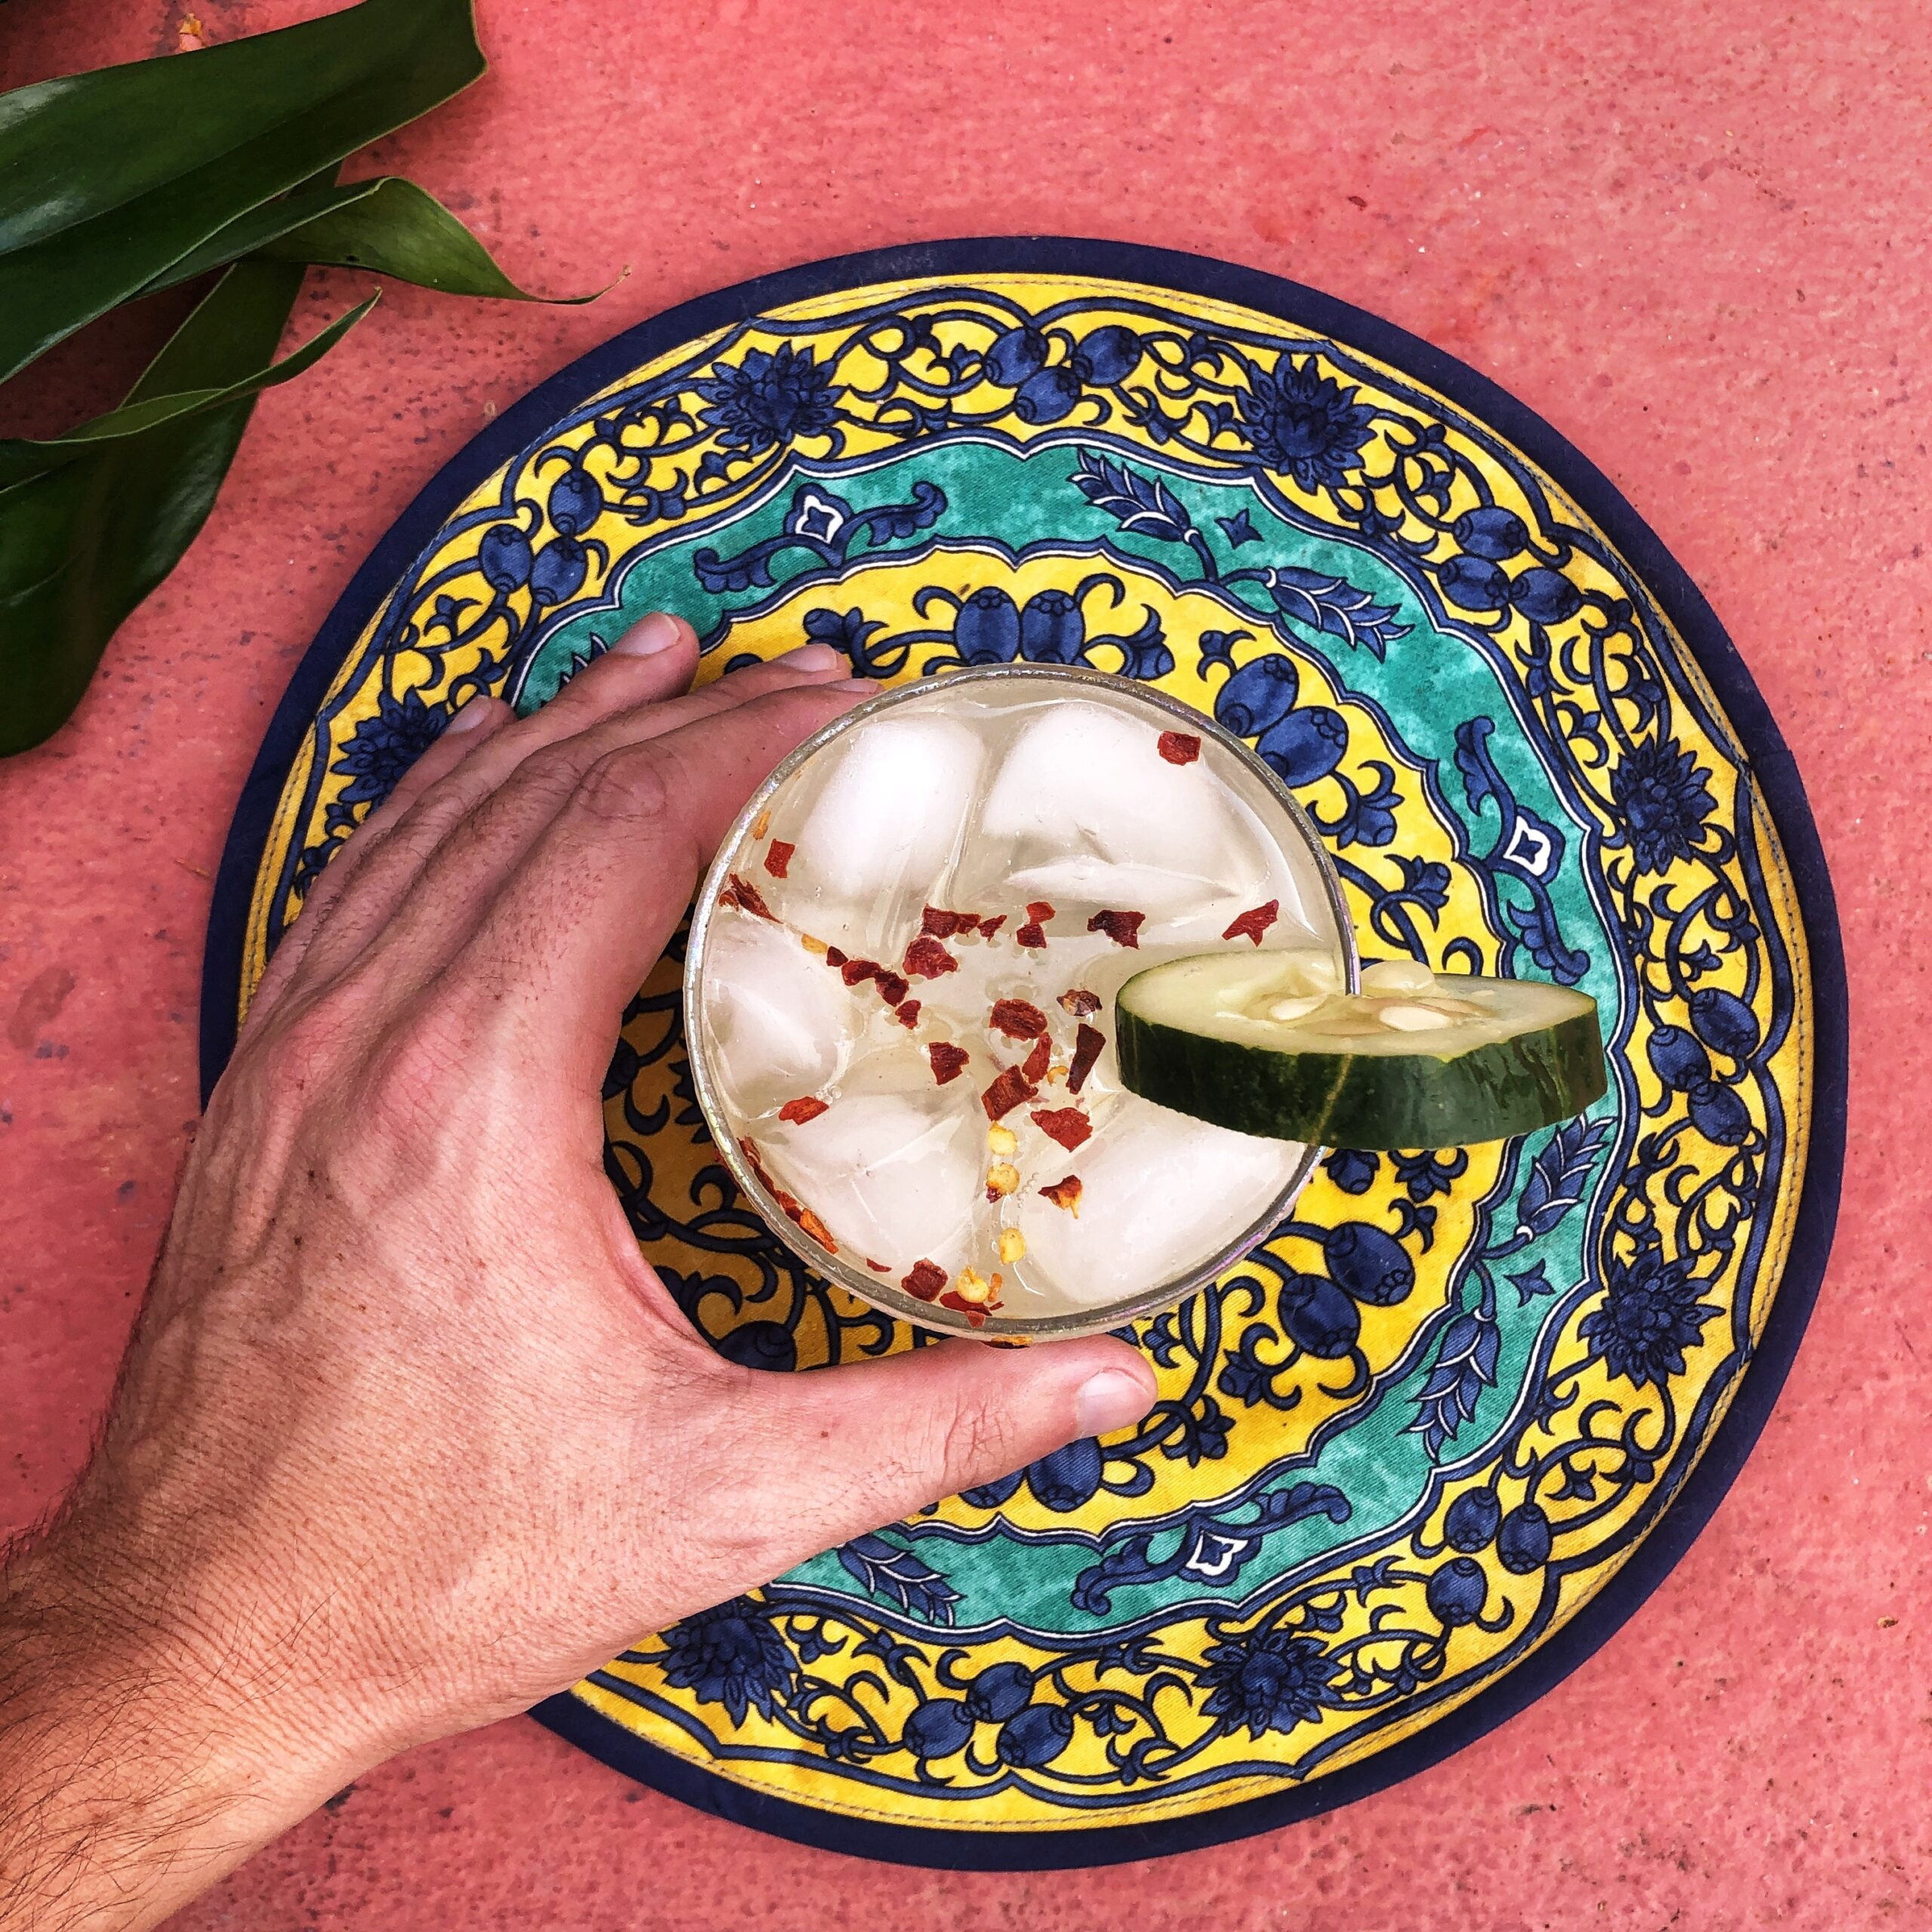 person holding blue and white ceramic bowl with ice cream